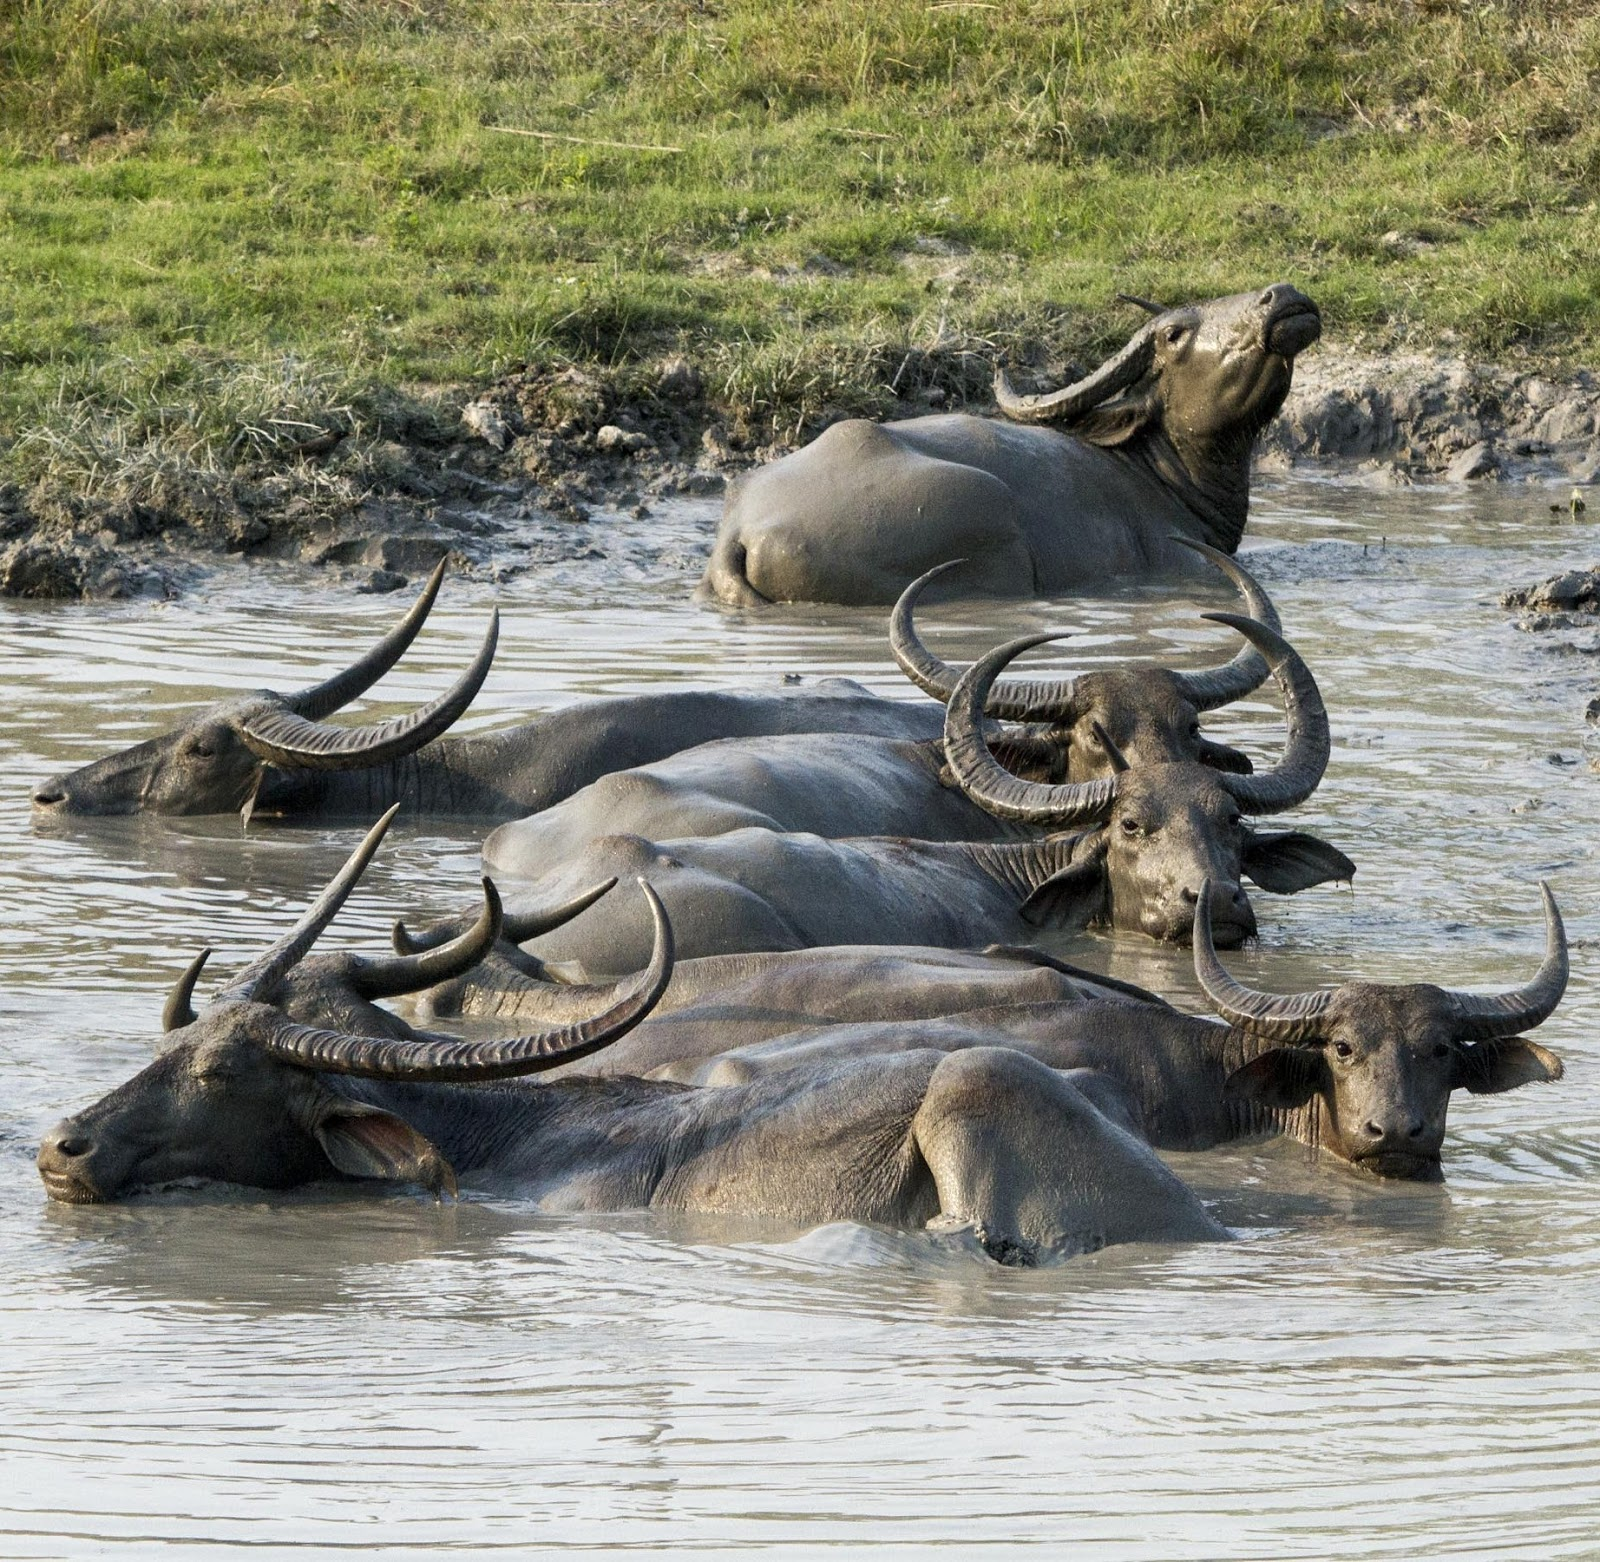 A photo of asiatic buffalo's